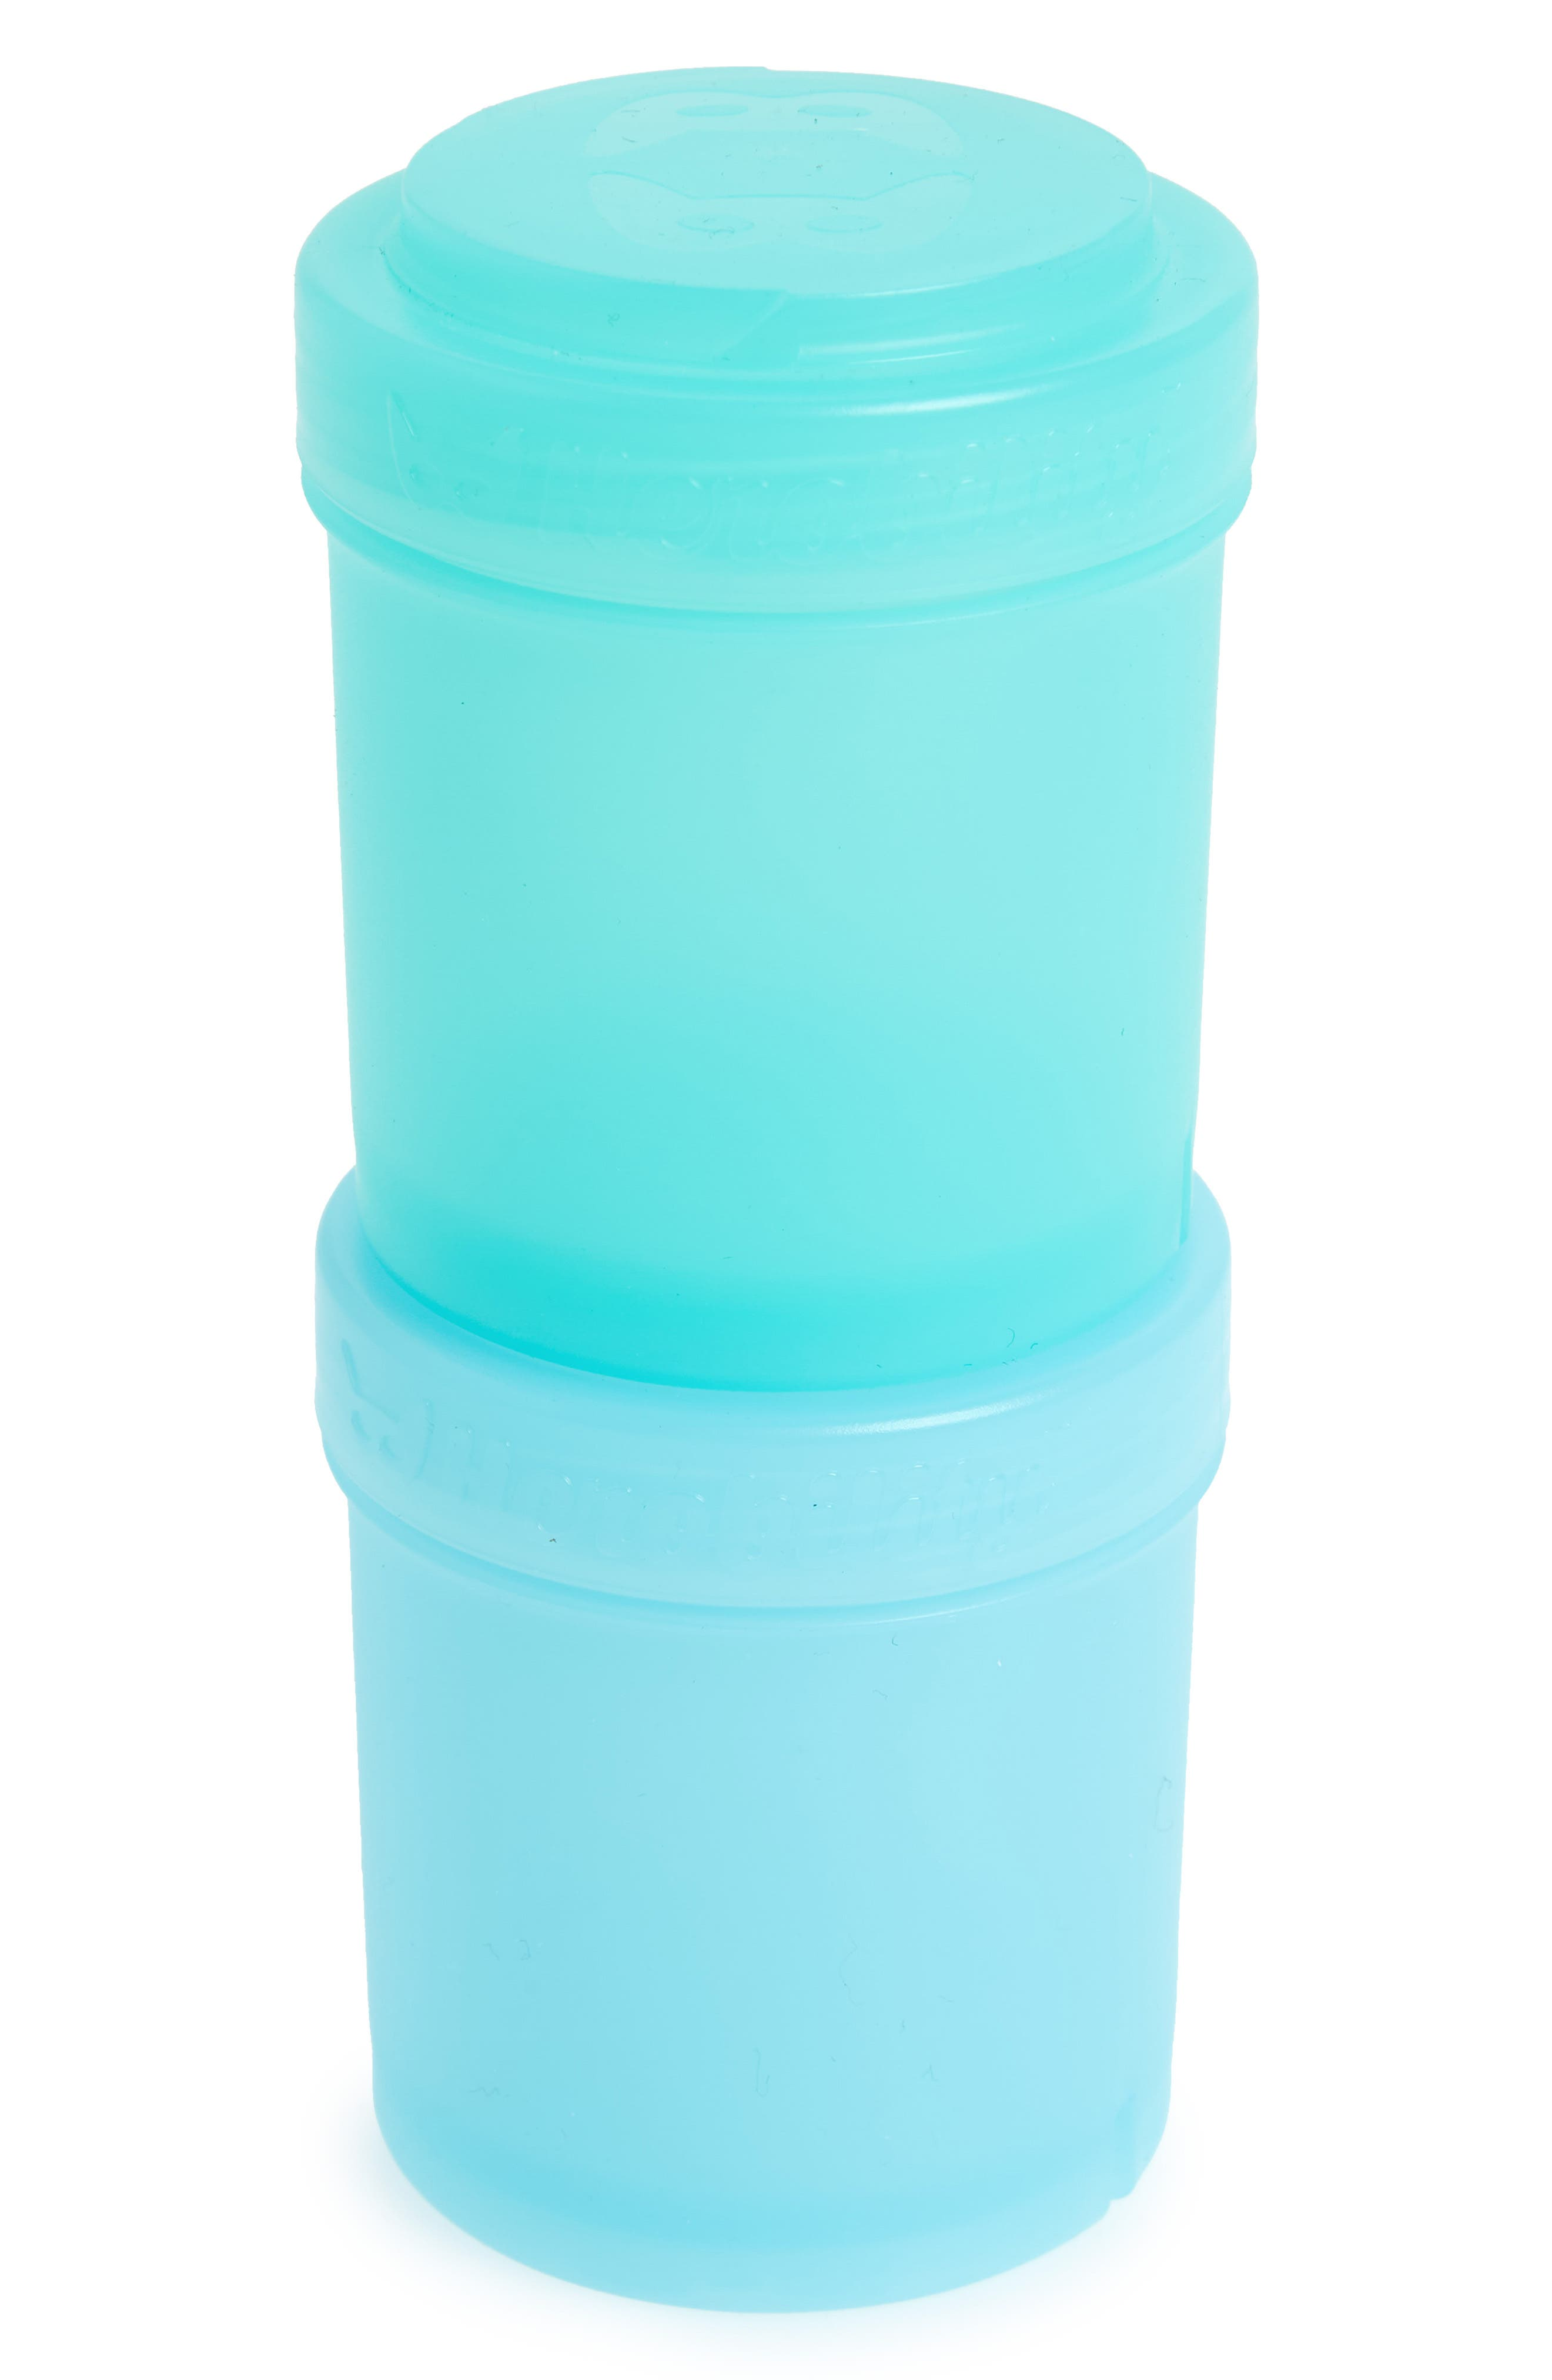 Set of 2 HeroStorage Food Compartments,                         Main,                         color, BLUE/ TURQUOISE